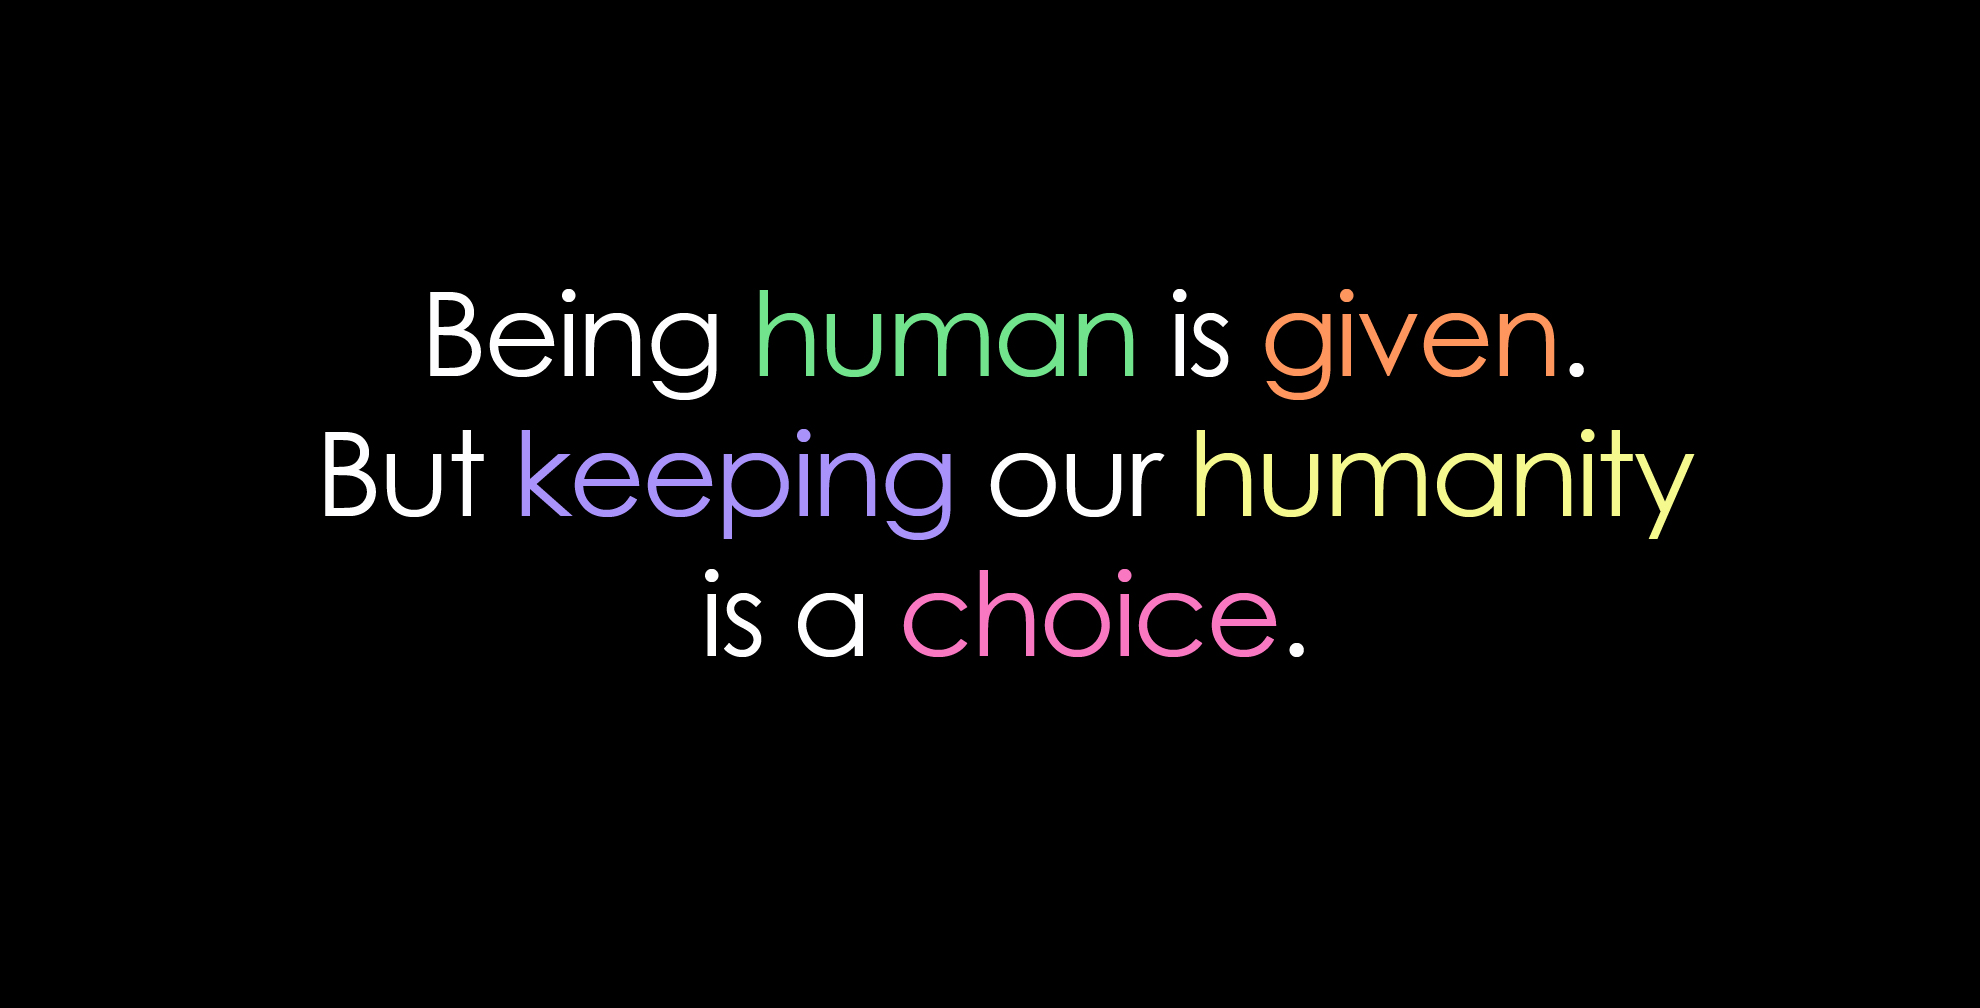 Being human is given. But keeping our humanity is a choice ...